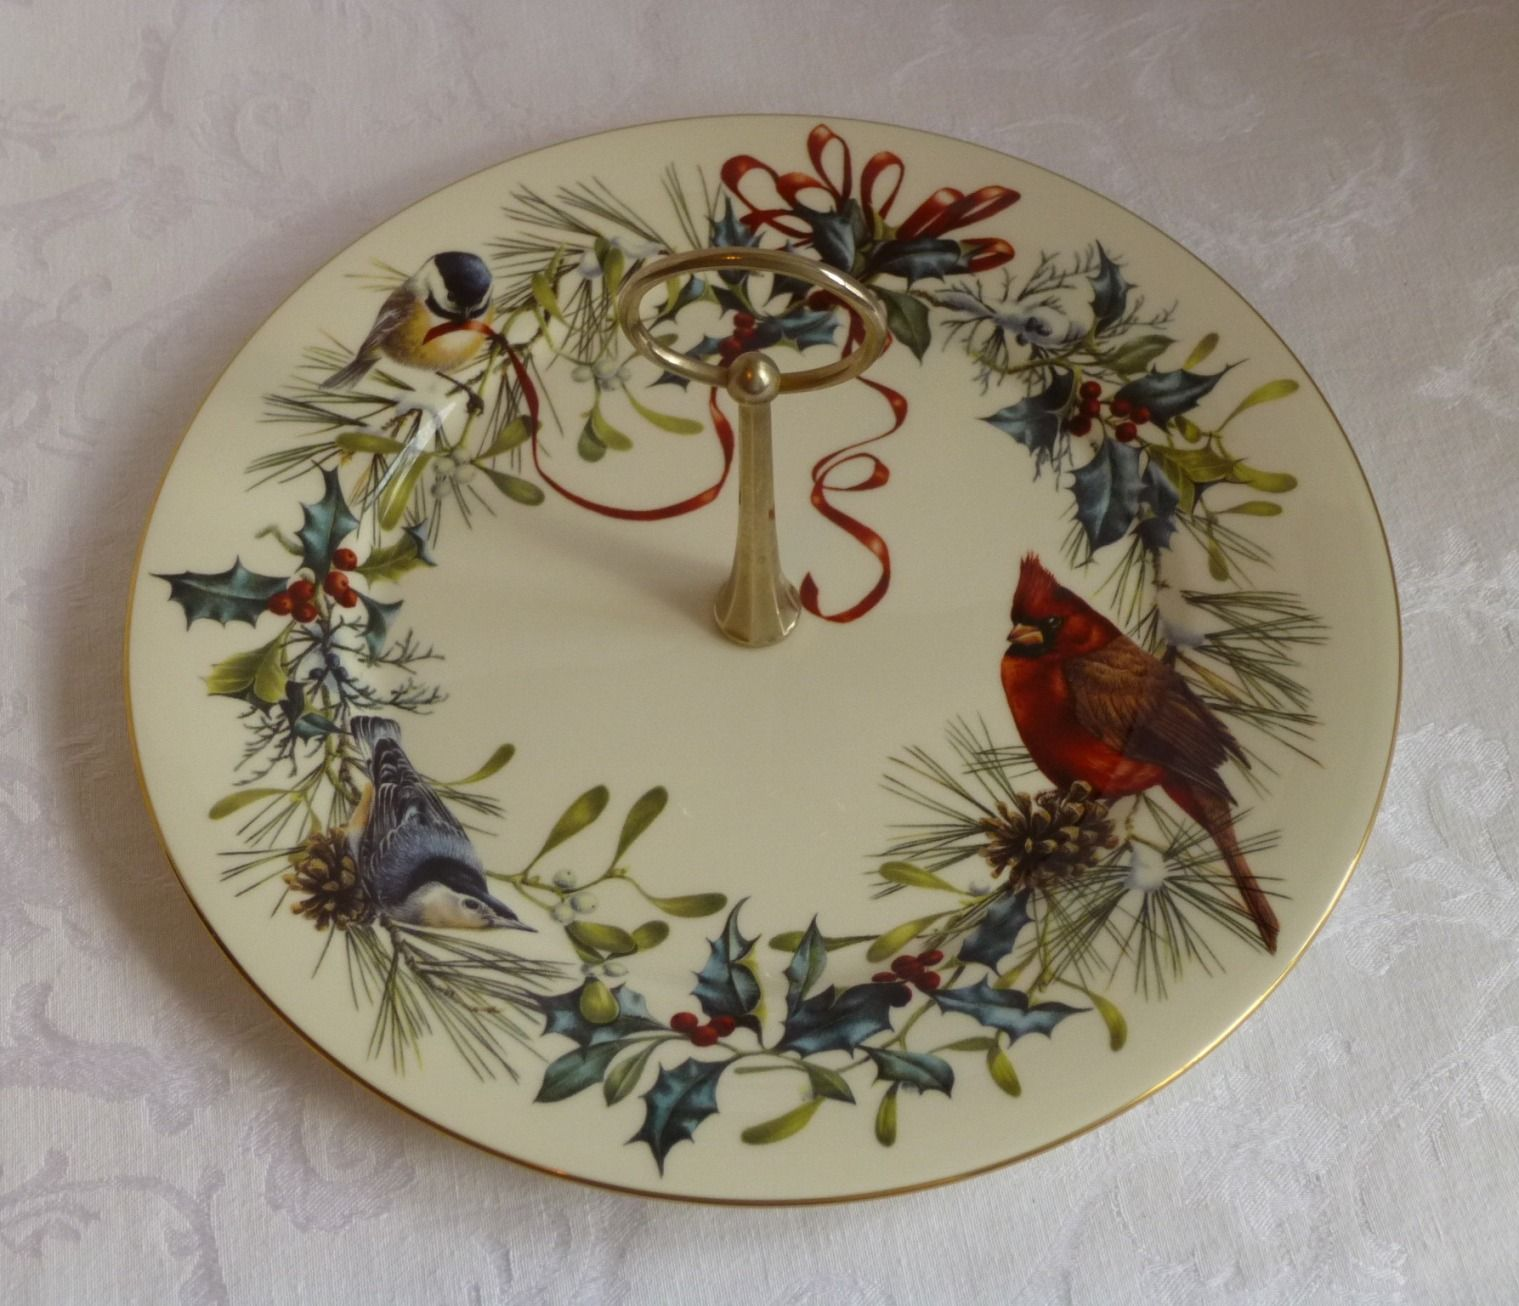 Lx 0005 lenox china winter greetings hors doeuvre serving plate lenox china zoom m4hsunfo